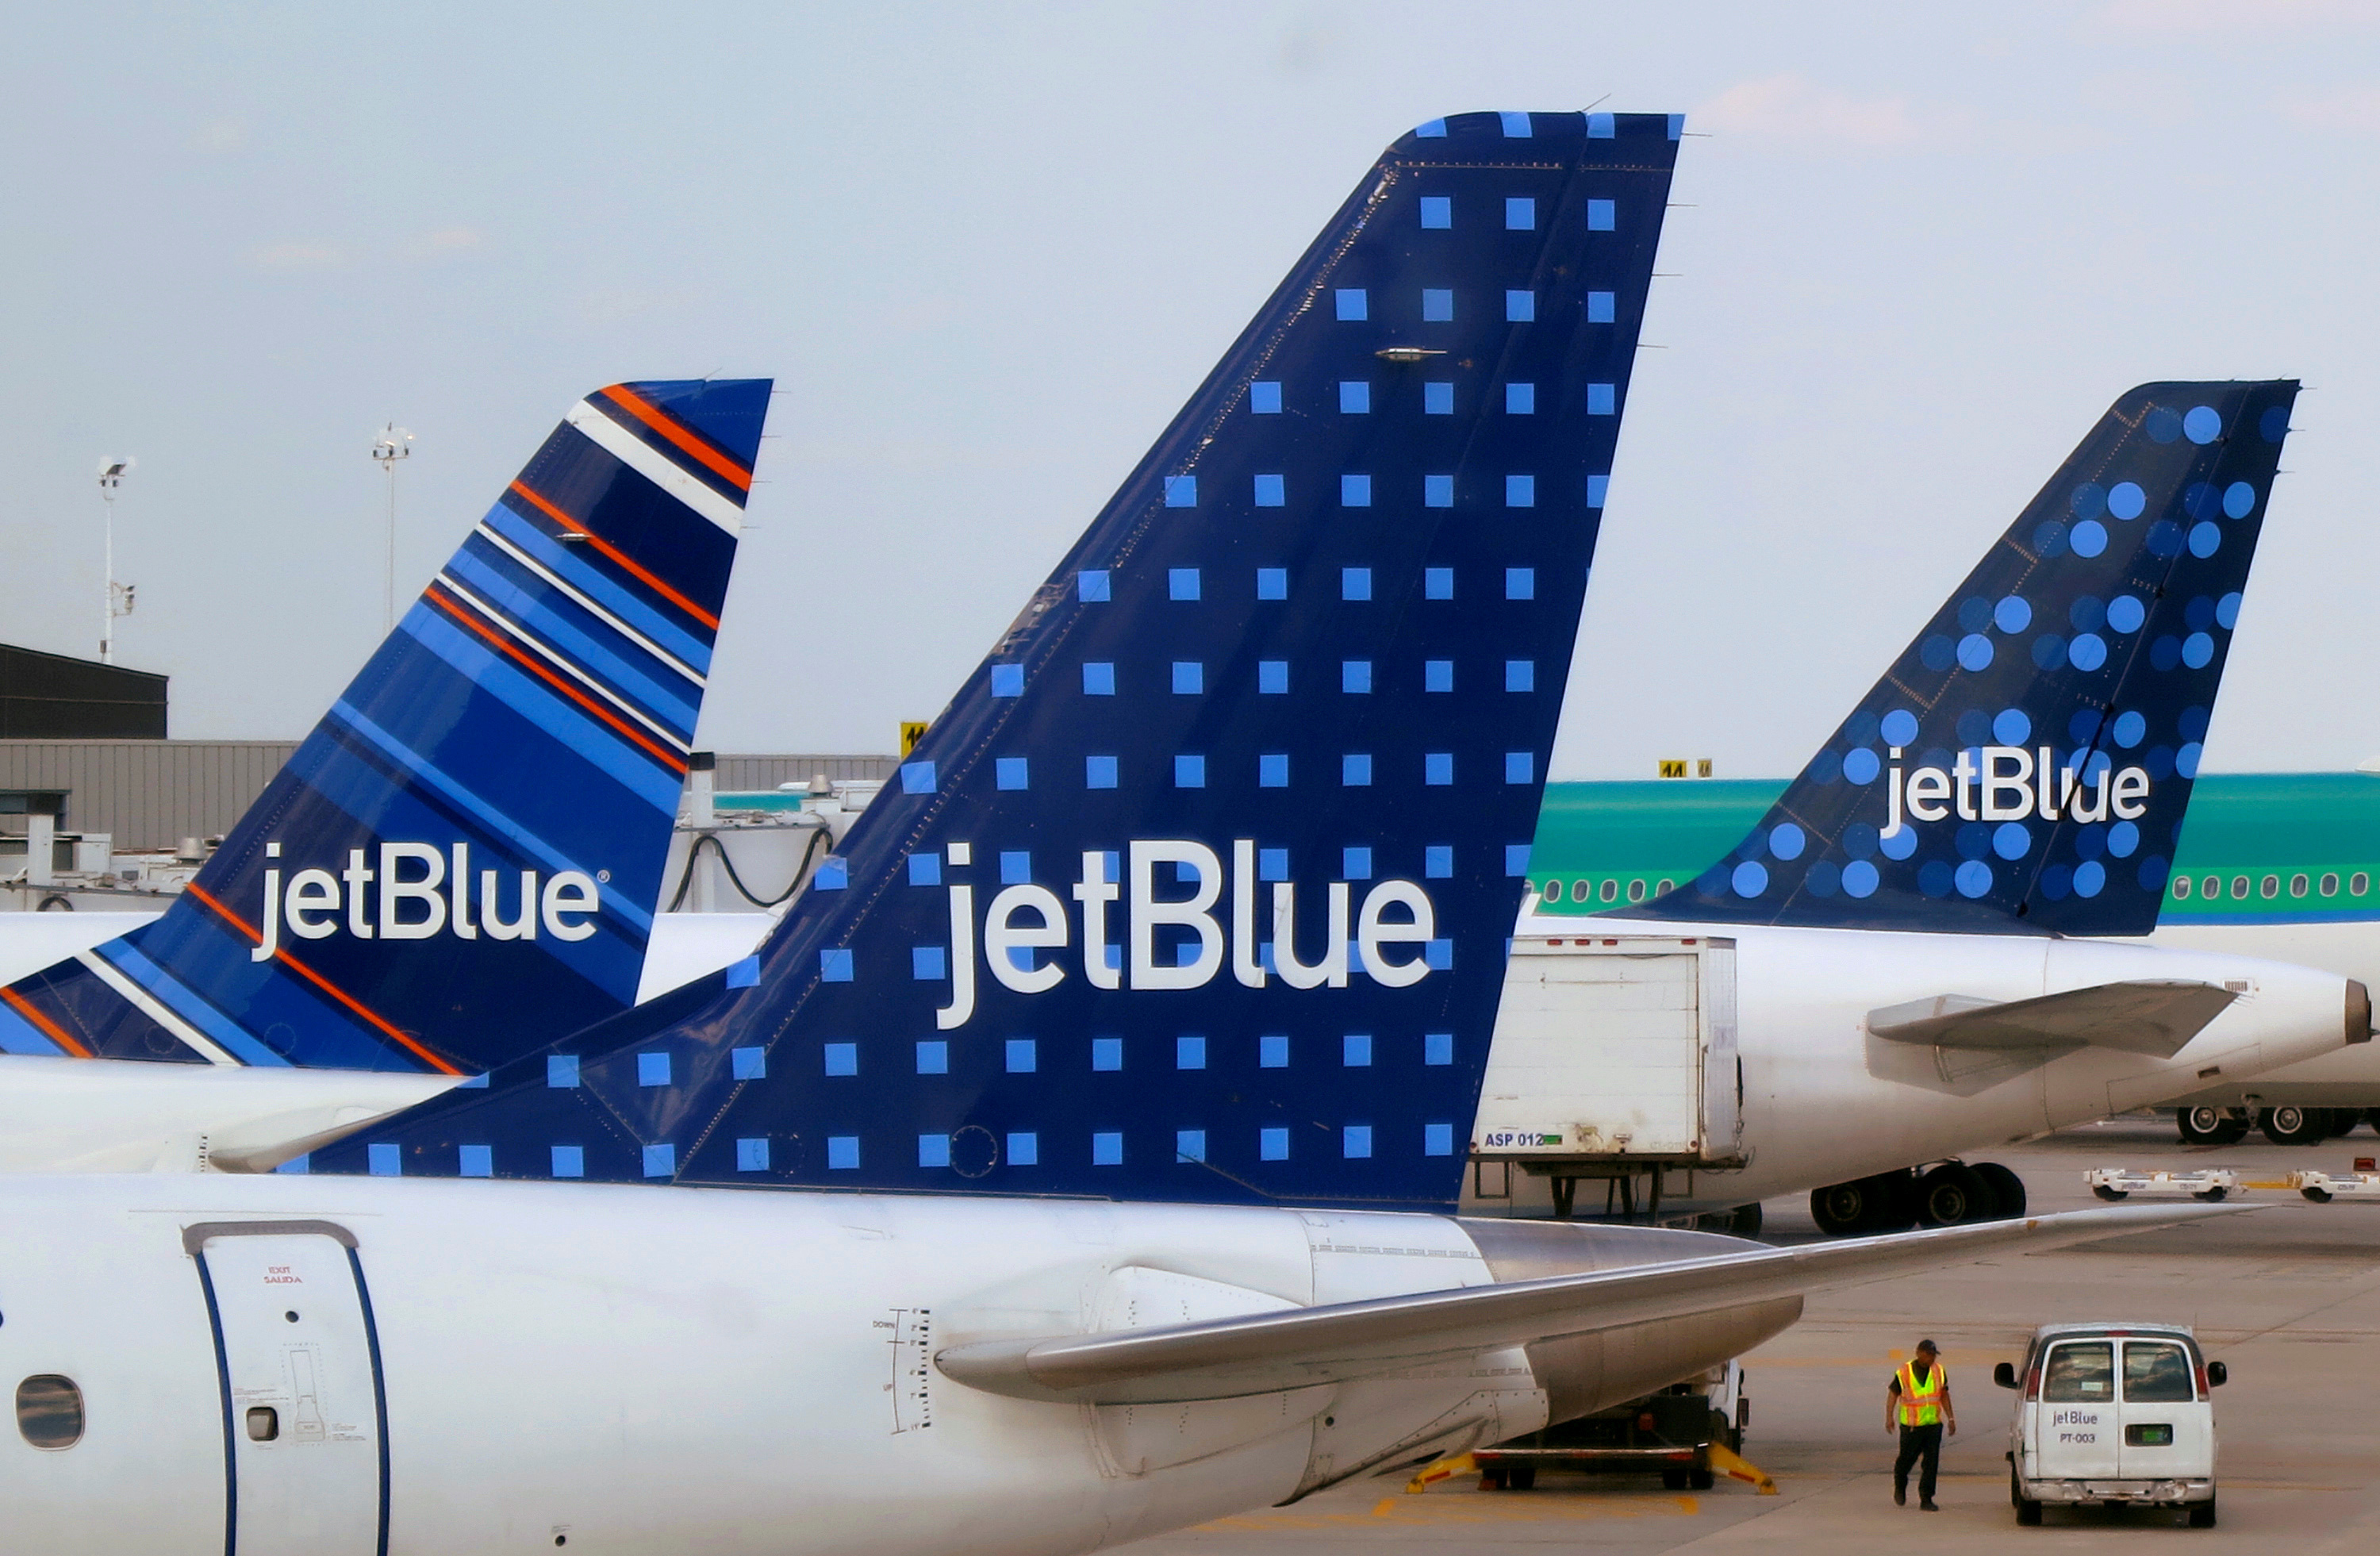 JetBlue Airways aircrafts are pictured at departure gates at John F. Kennedy International Airport in New York June 15, 2013. REUTERS/Fred Prouser/File Photo/File Photo